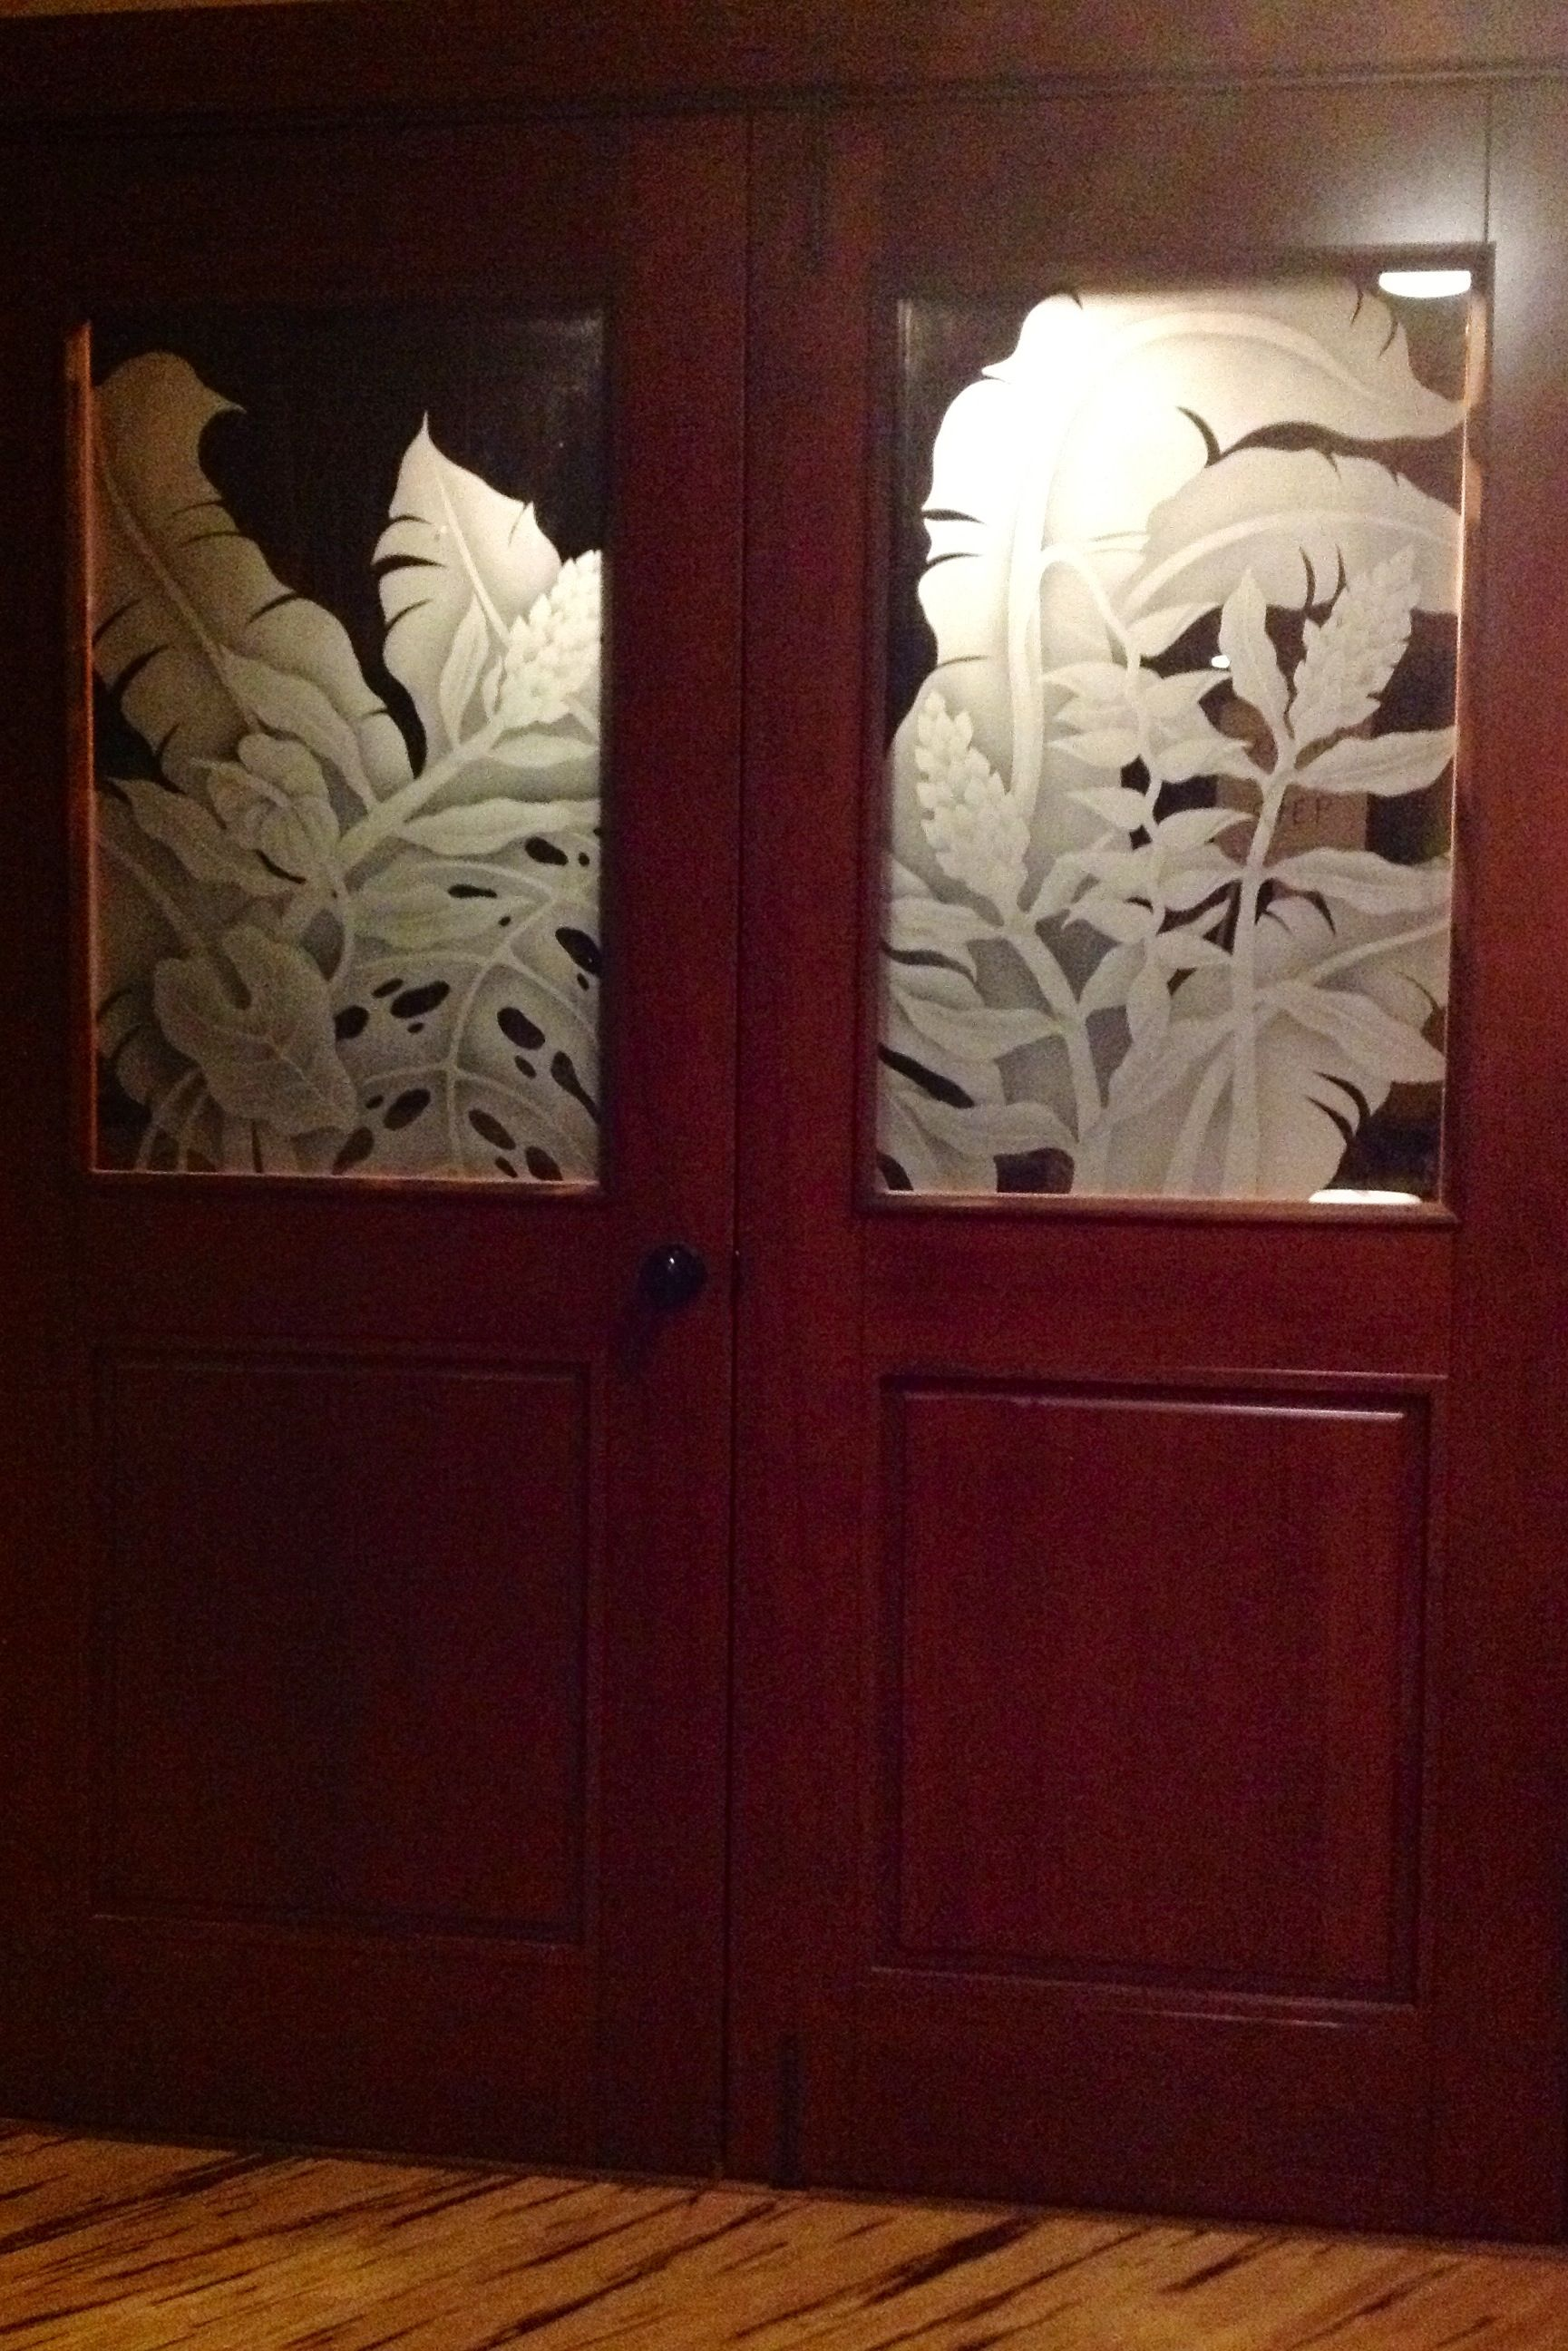 Etched Glass front double doors in Honolulu art by Cory Kot & Etched Glass front double doors in Honolulu art by Cory Kot ...